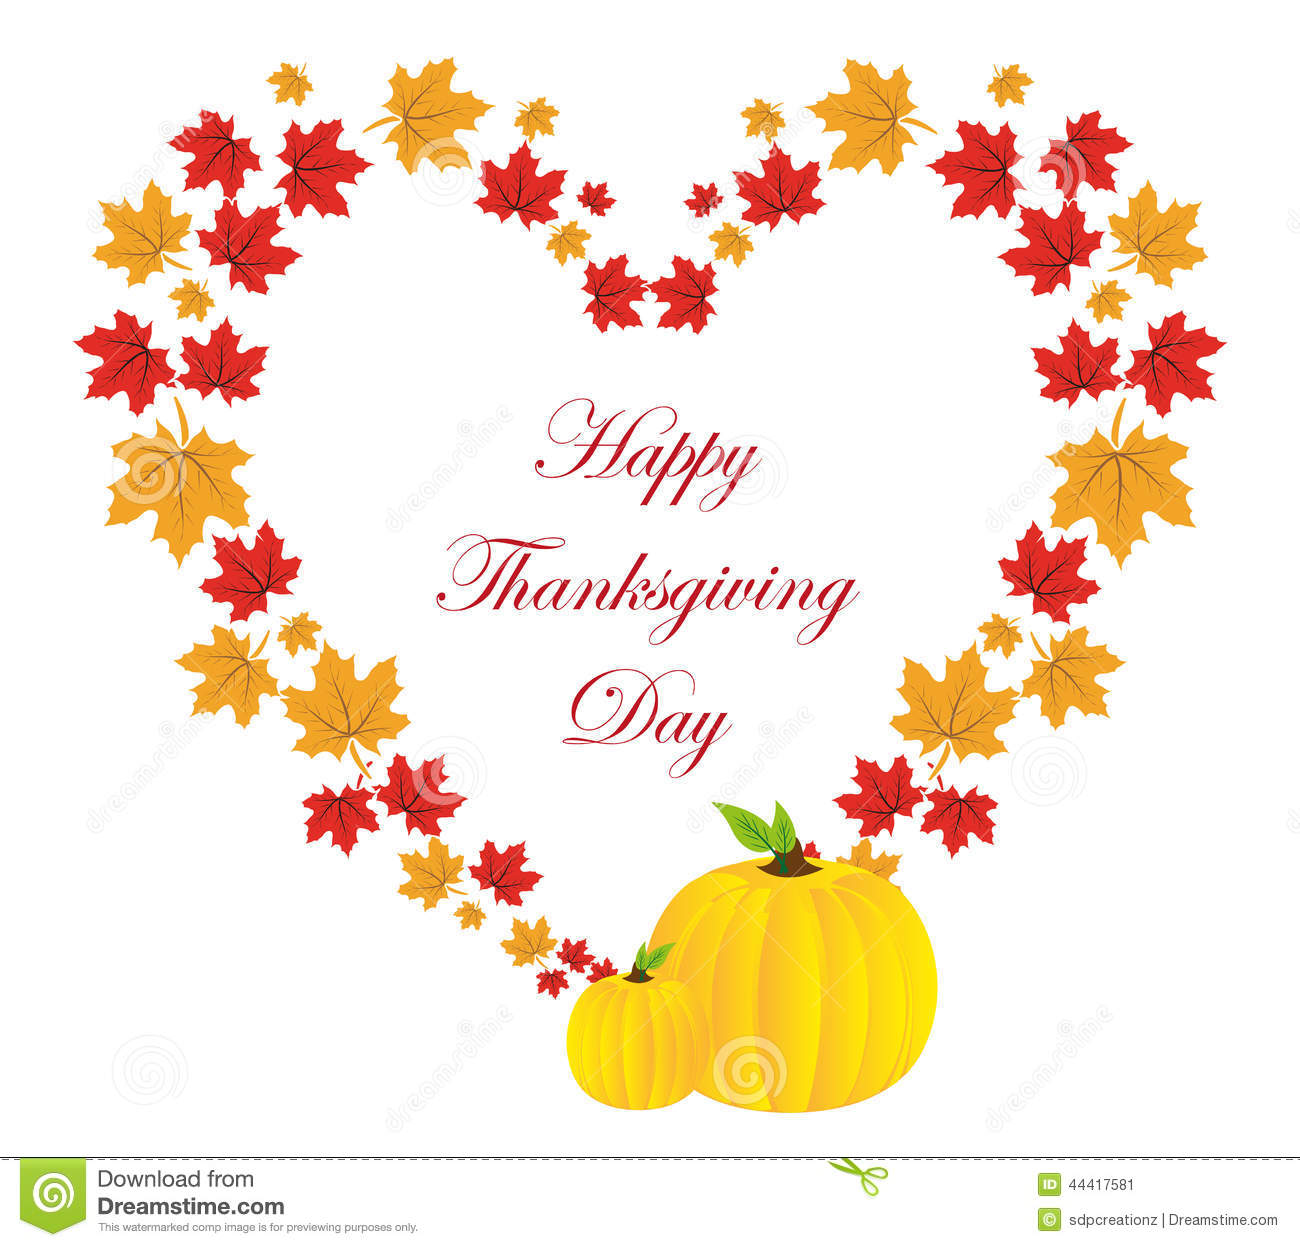 Happy Thanksgiving Day Background Stock Vector - Illustration of blank,  frame: 44417581